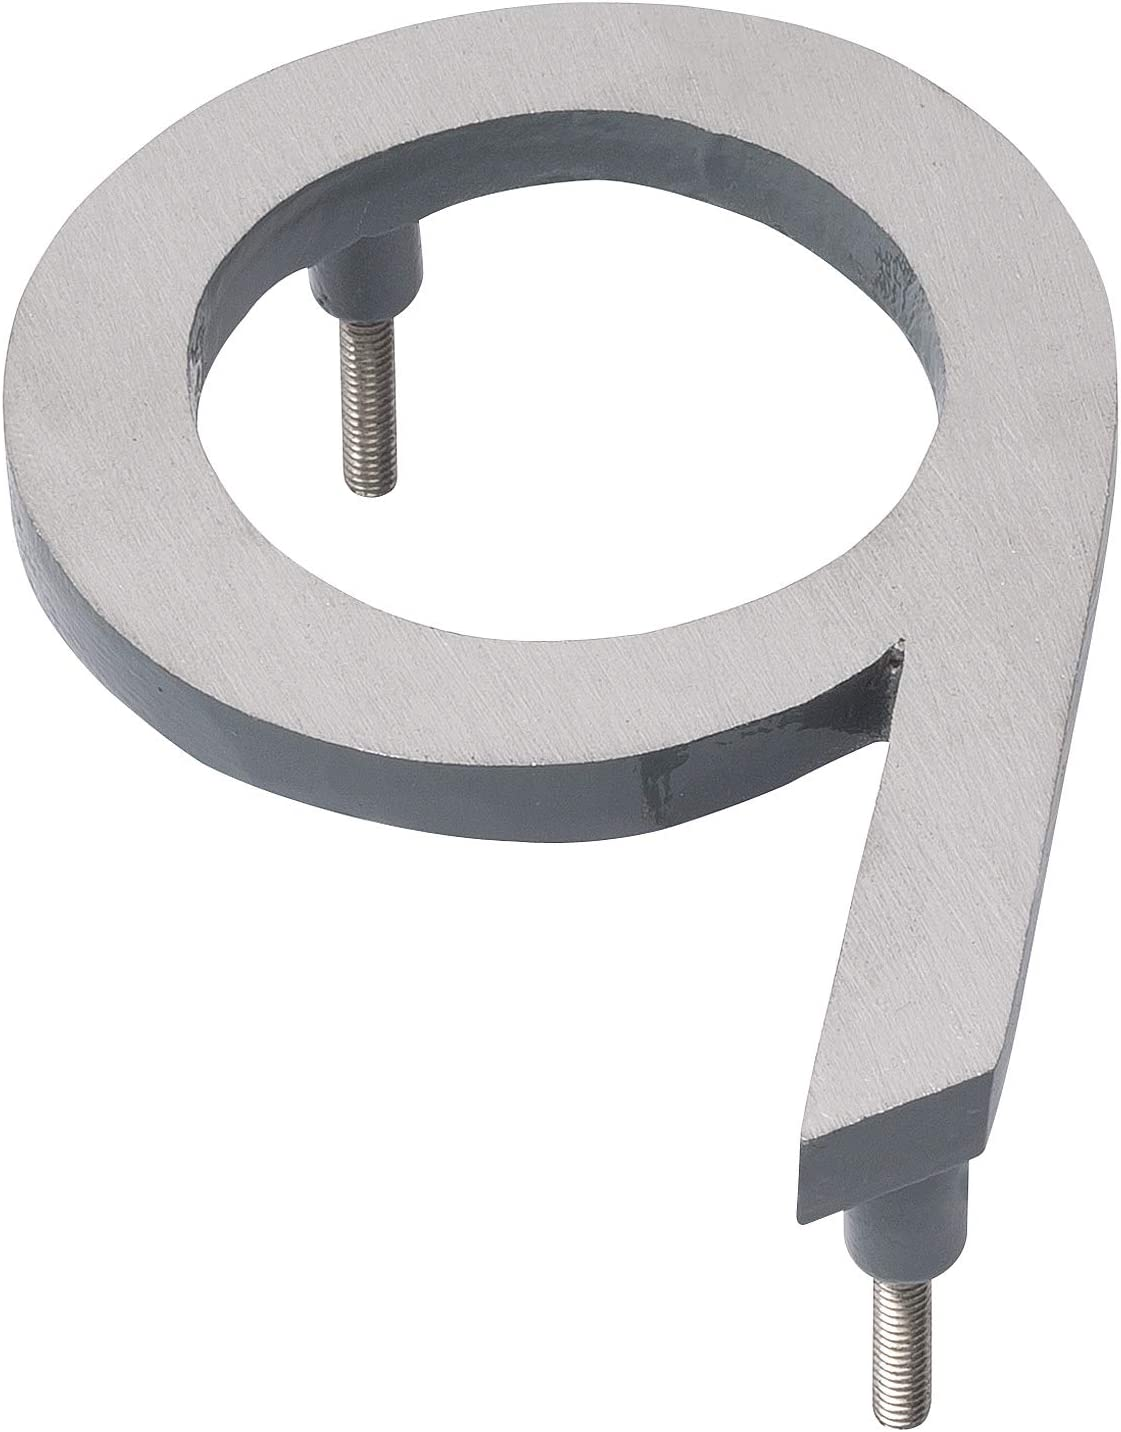 Montague Metal Products MHN-6-F-GY2-0 Solid Brushed Aluminum Modern Floating Address House Numbers Satin Nickel Powder Coated Gray Two-Tone 6